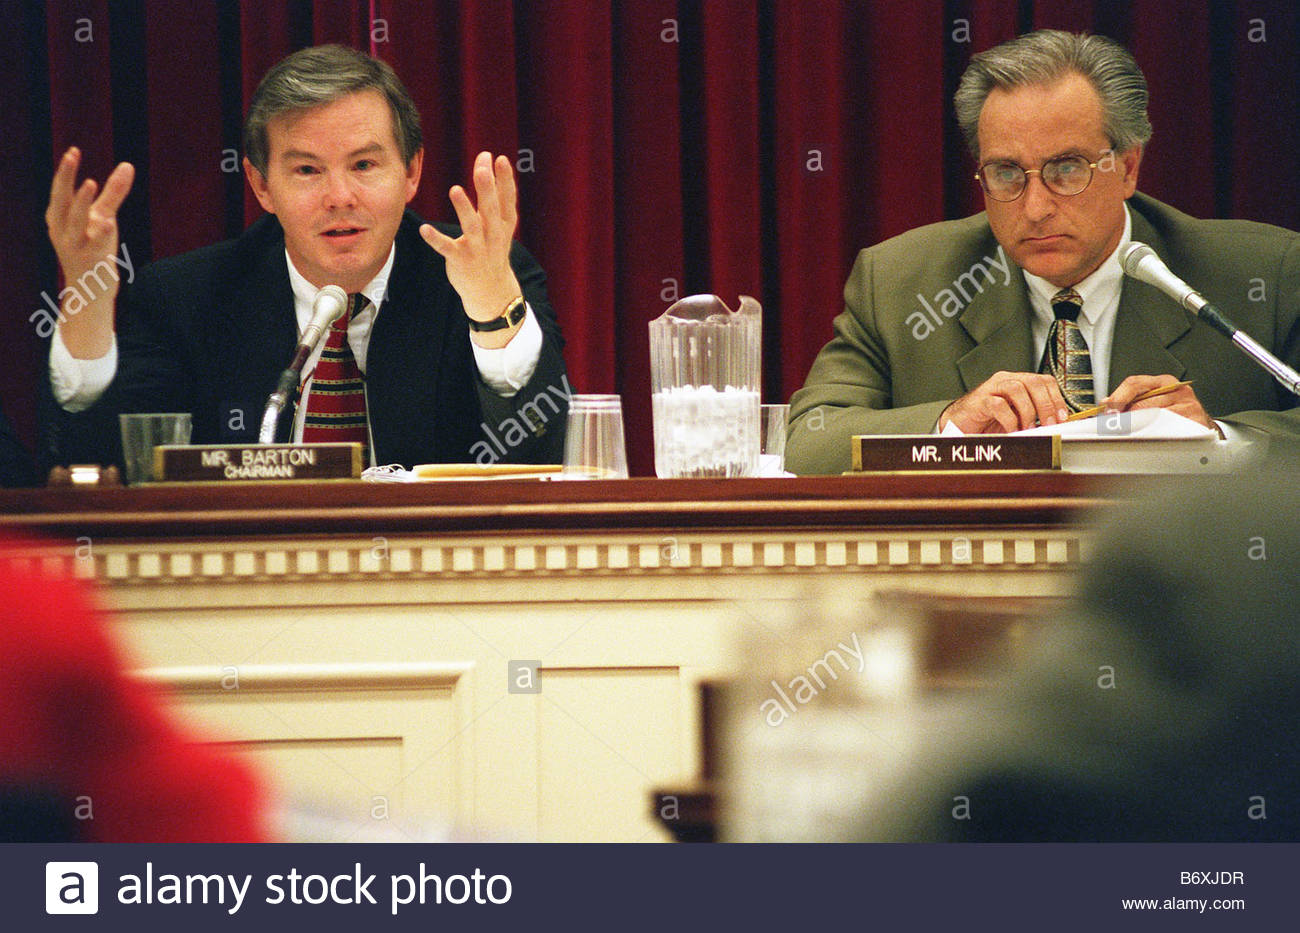 Charming 10 23 97 ENERGY DEPARTMENT HEARING House Commerce Oversight Subcommittee  Chairman Joe Barton R Texas And Ranking Member Ron Klink D Pa During  Questioning Of ...